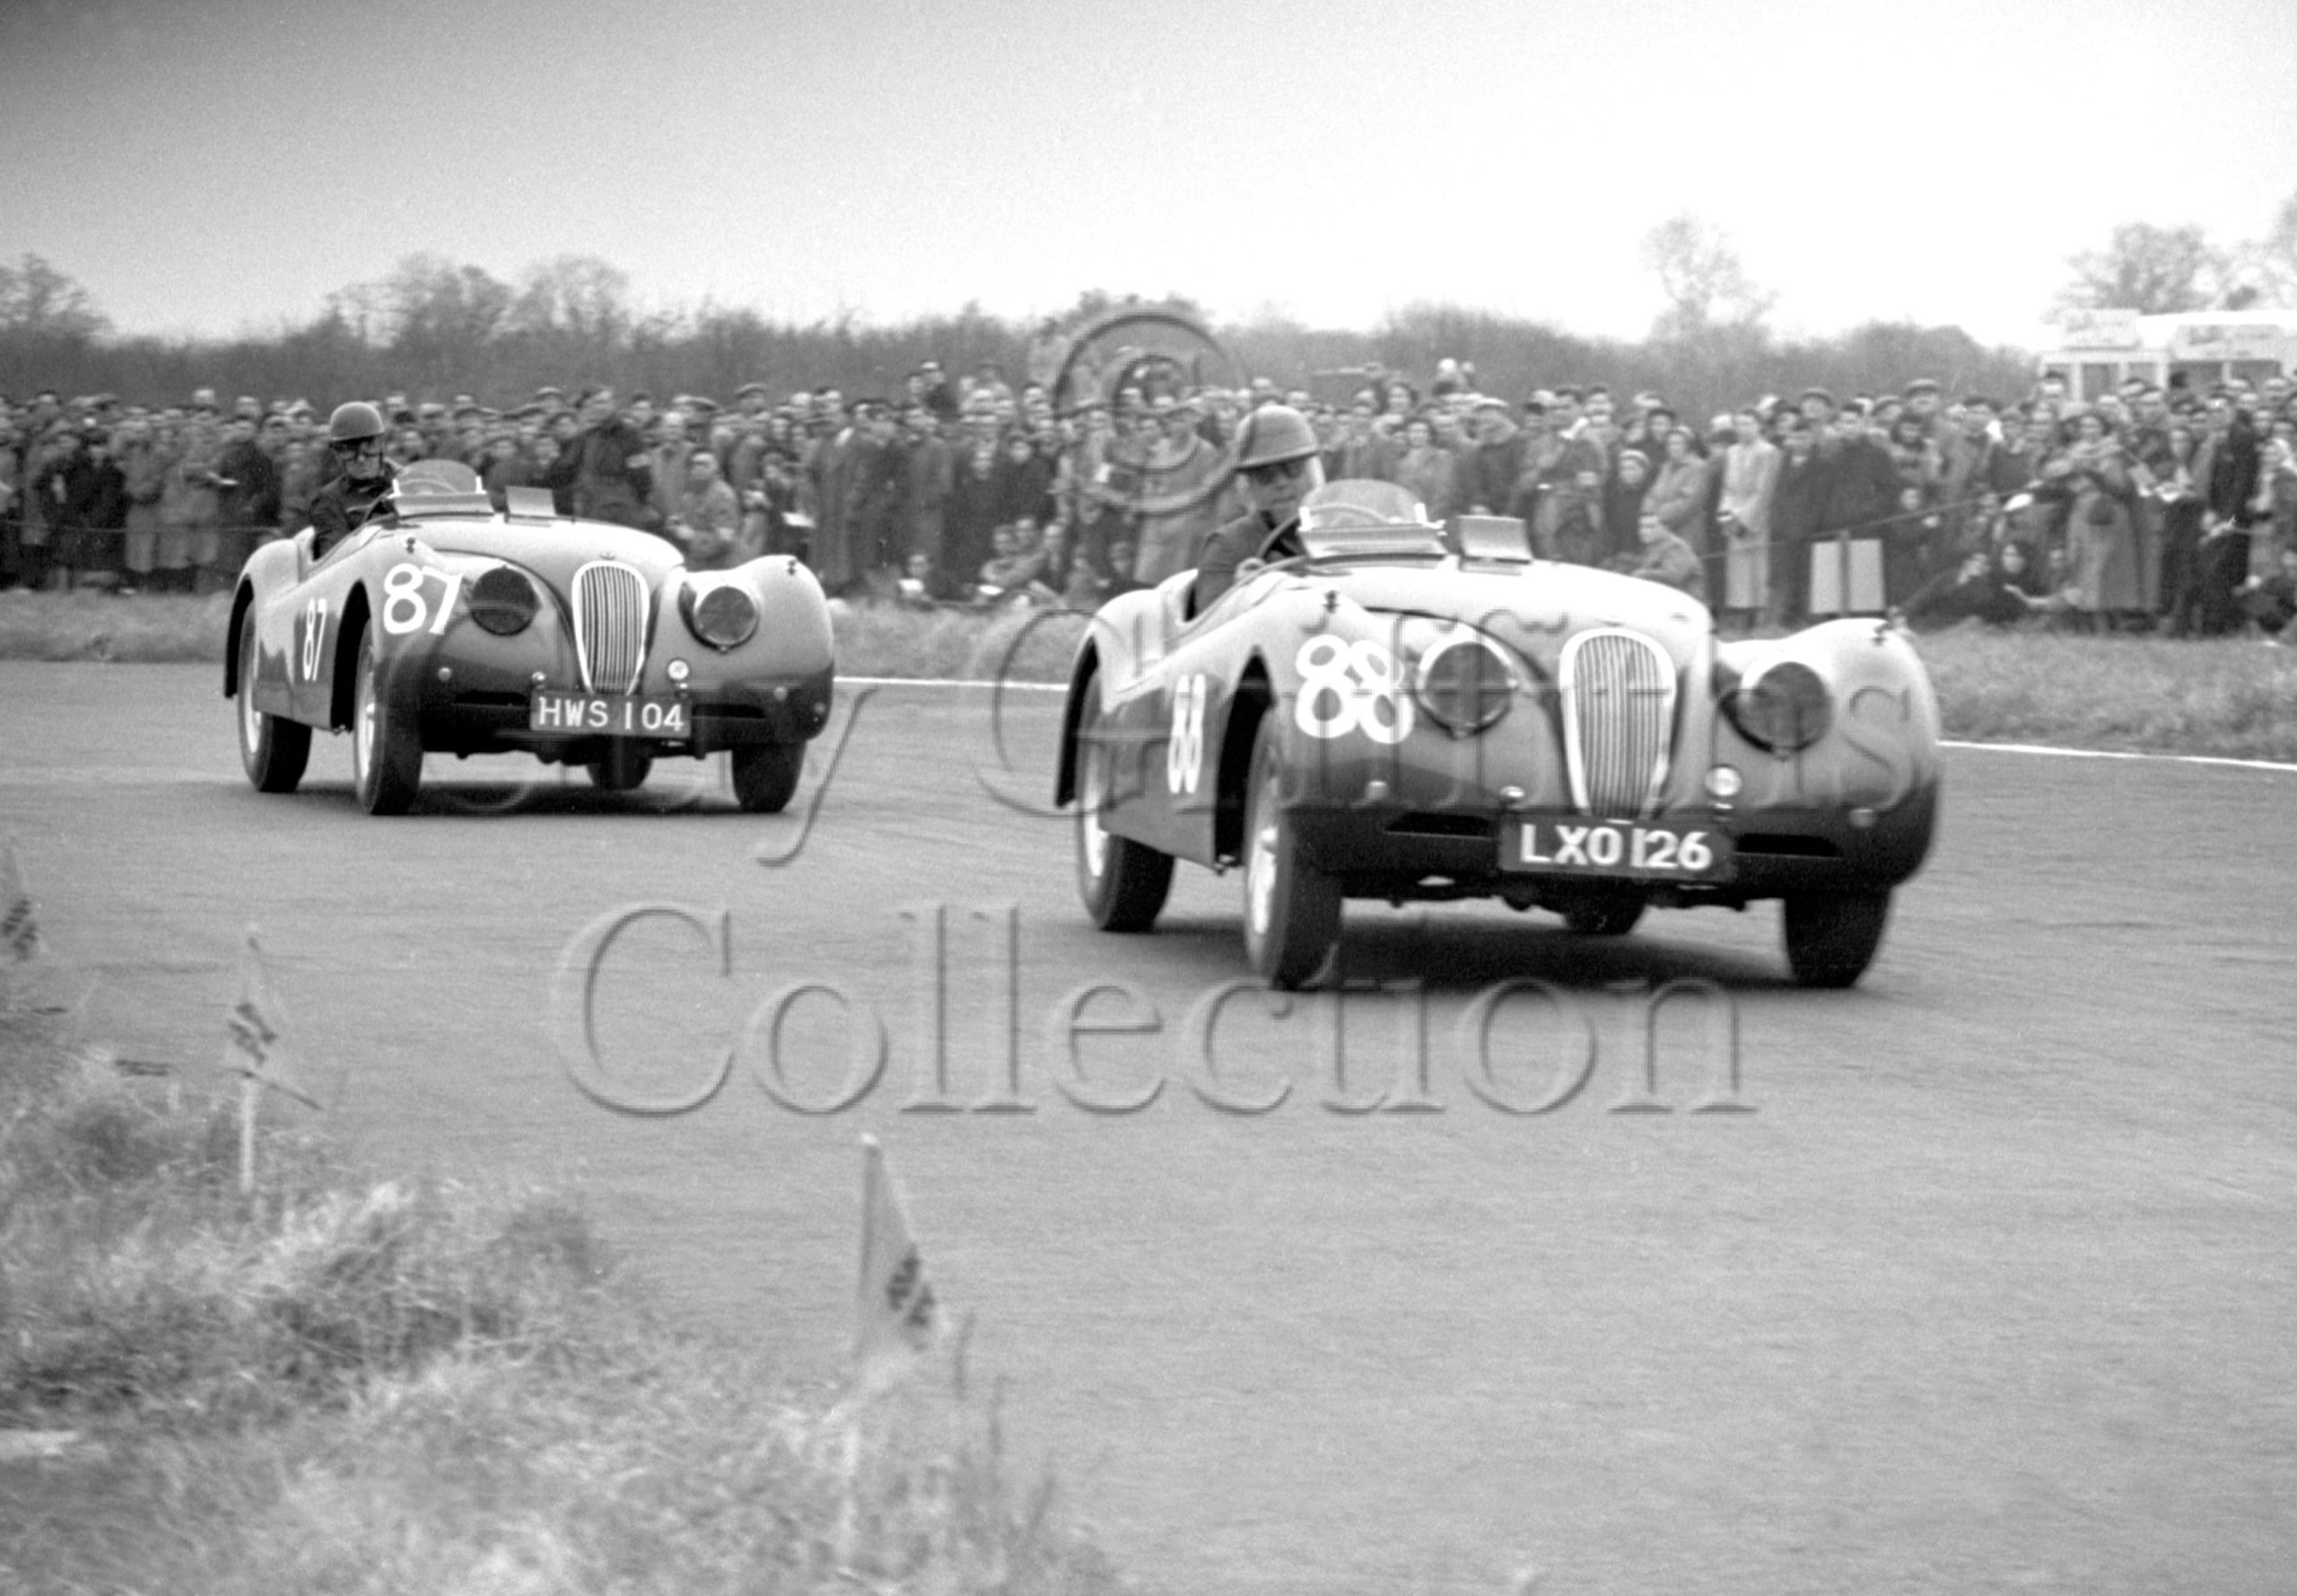 52-172—J-L-M-Scott-Douglas–Jaguar-XK-120-LXO-126–Castle-Combe–12-04-1952.jpg - Guy Griffiths Collection